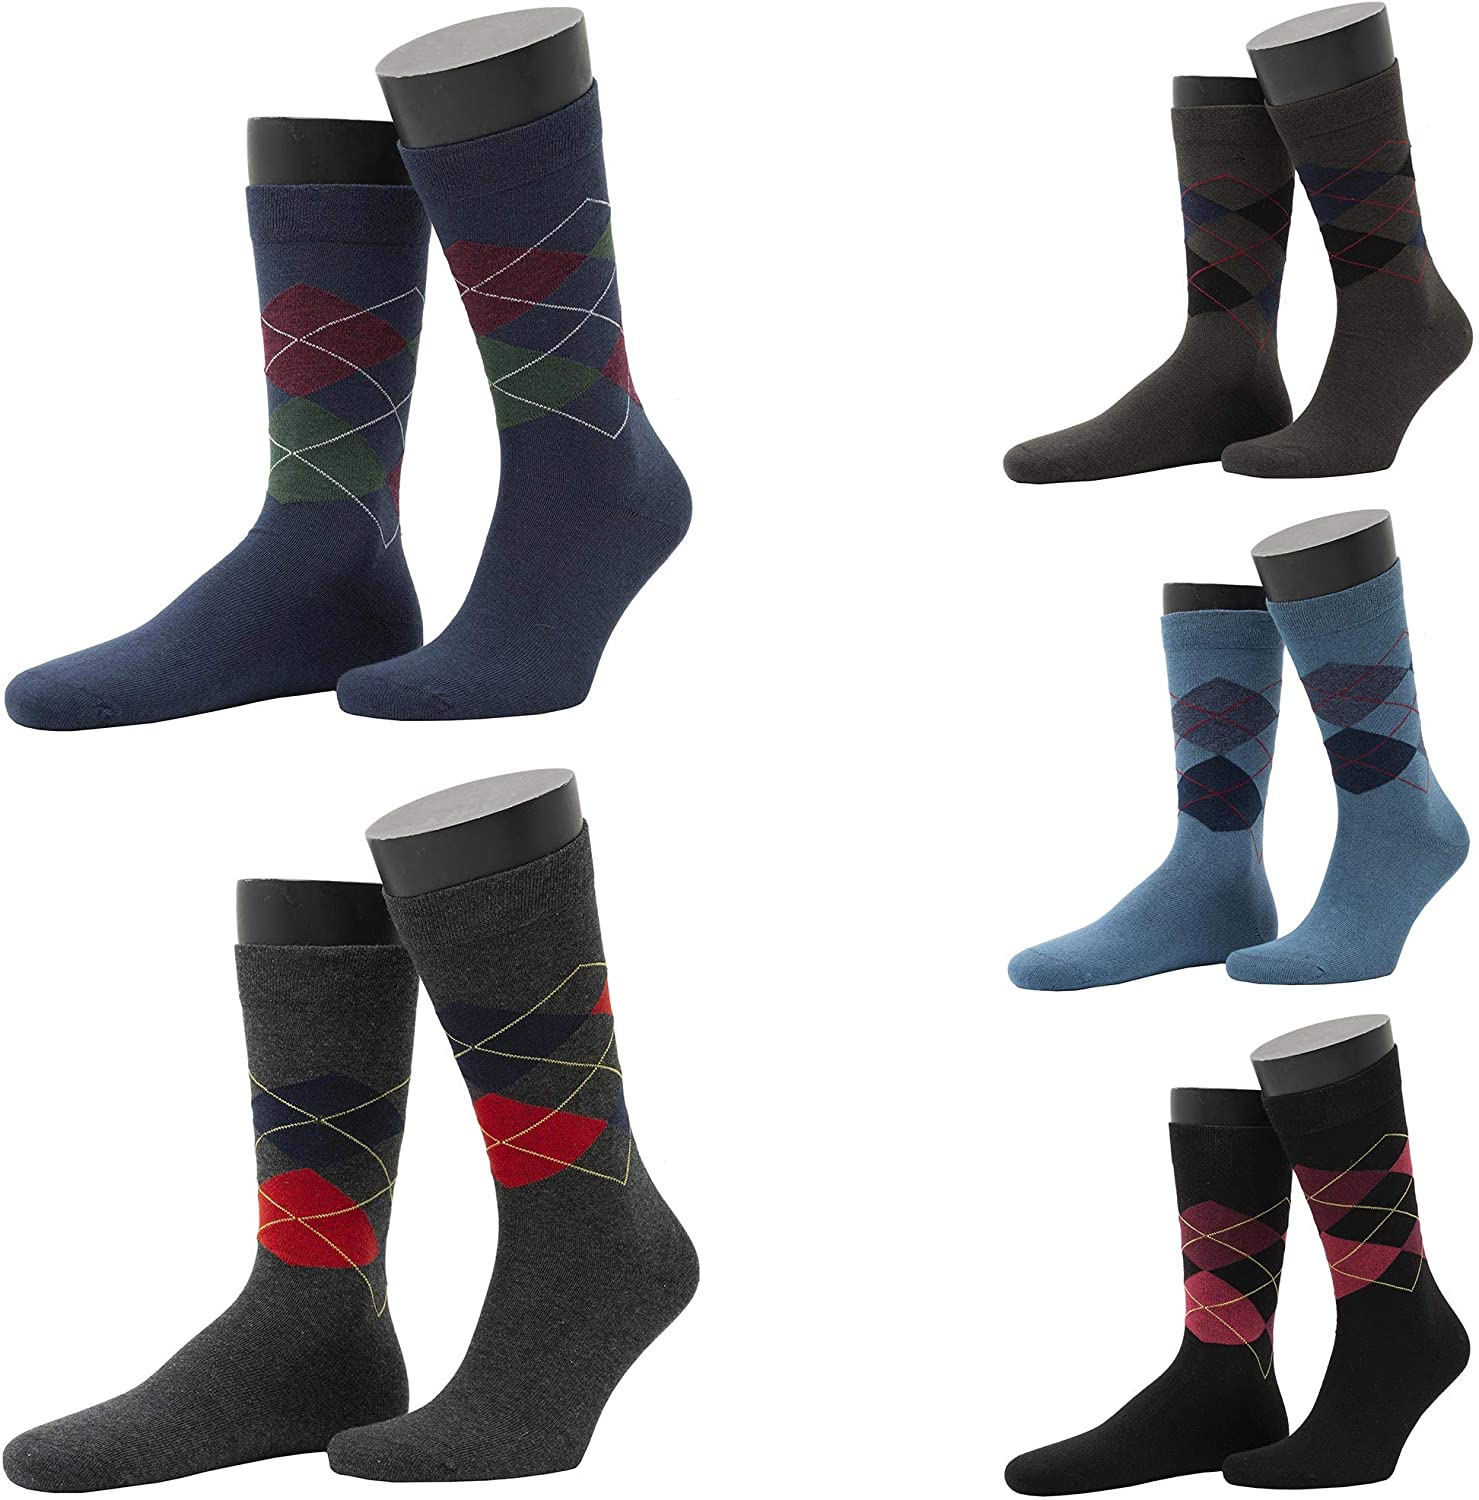 European Made OEKOTEX Certified 5 Pack Assorted Premium Cotton Casual Designer Socks For Men